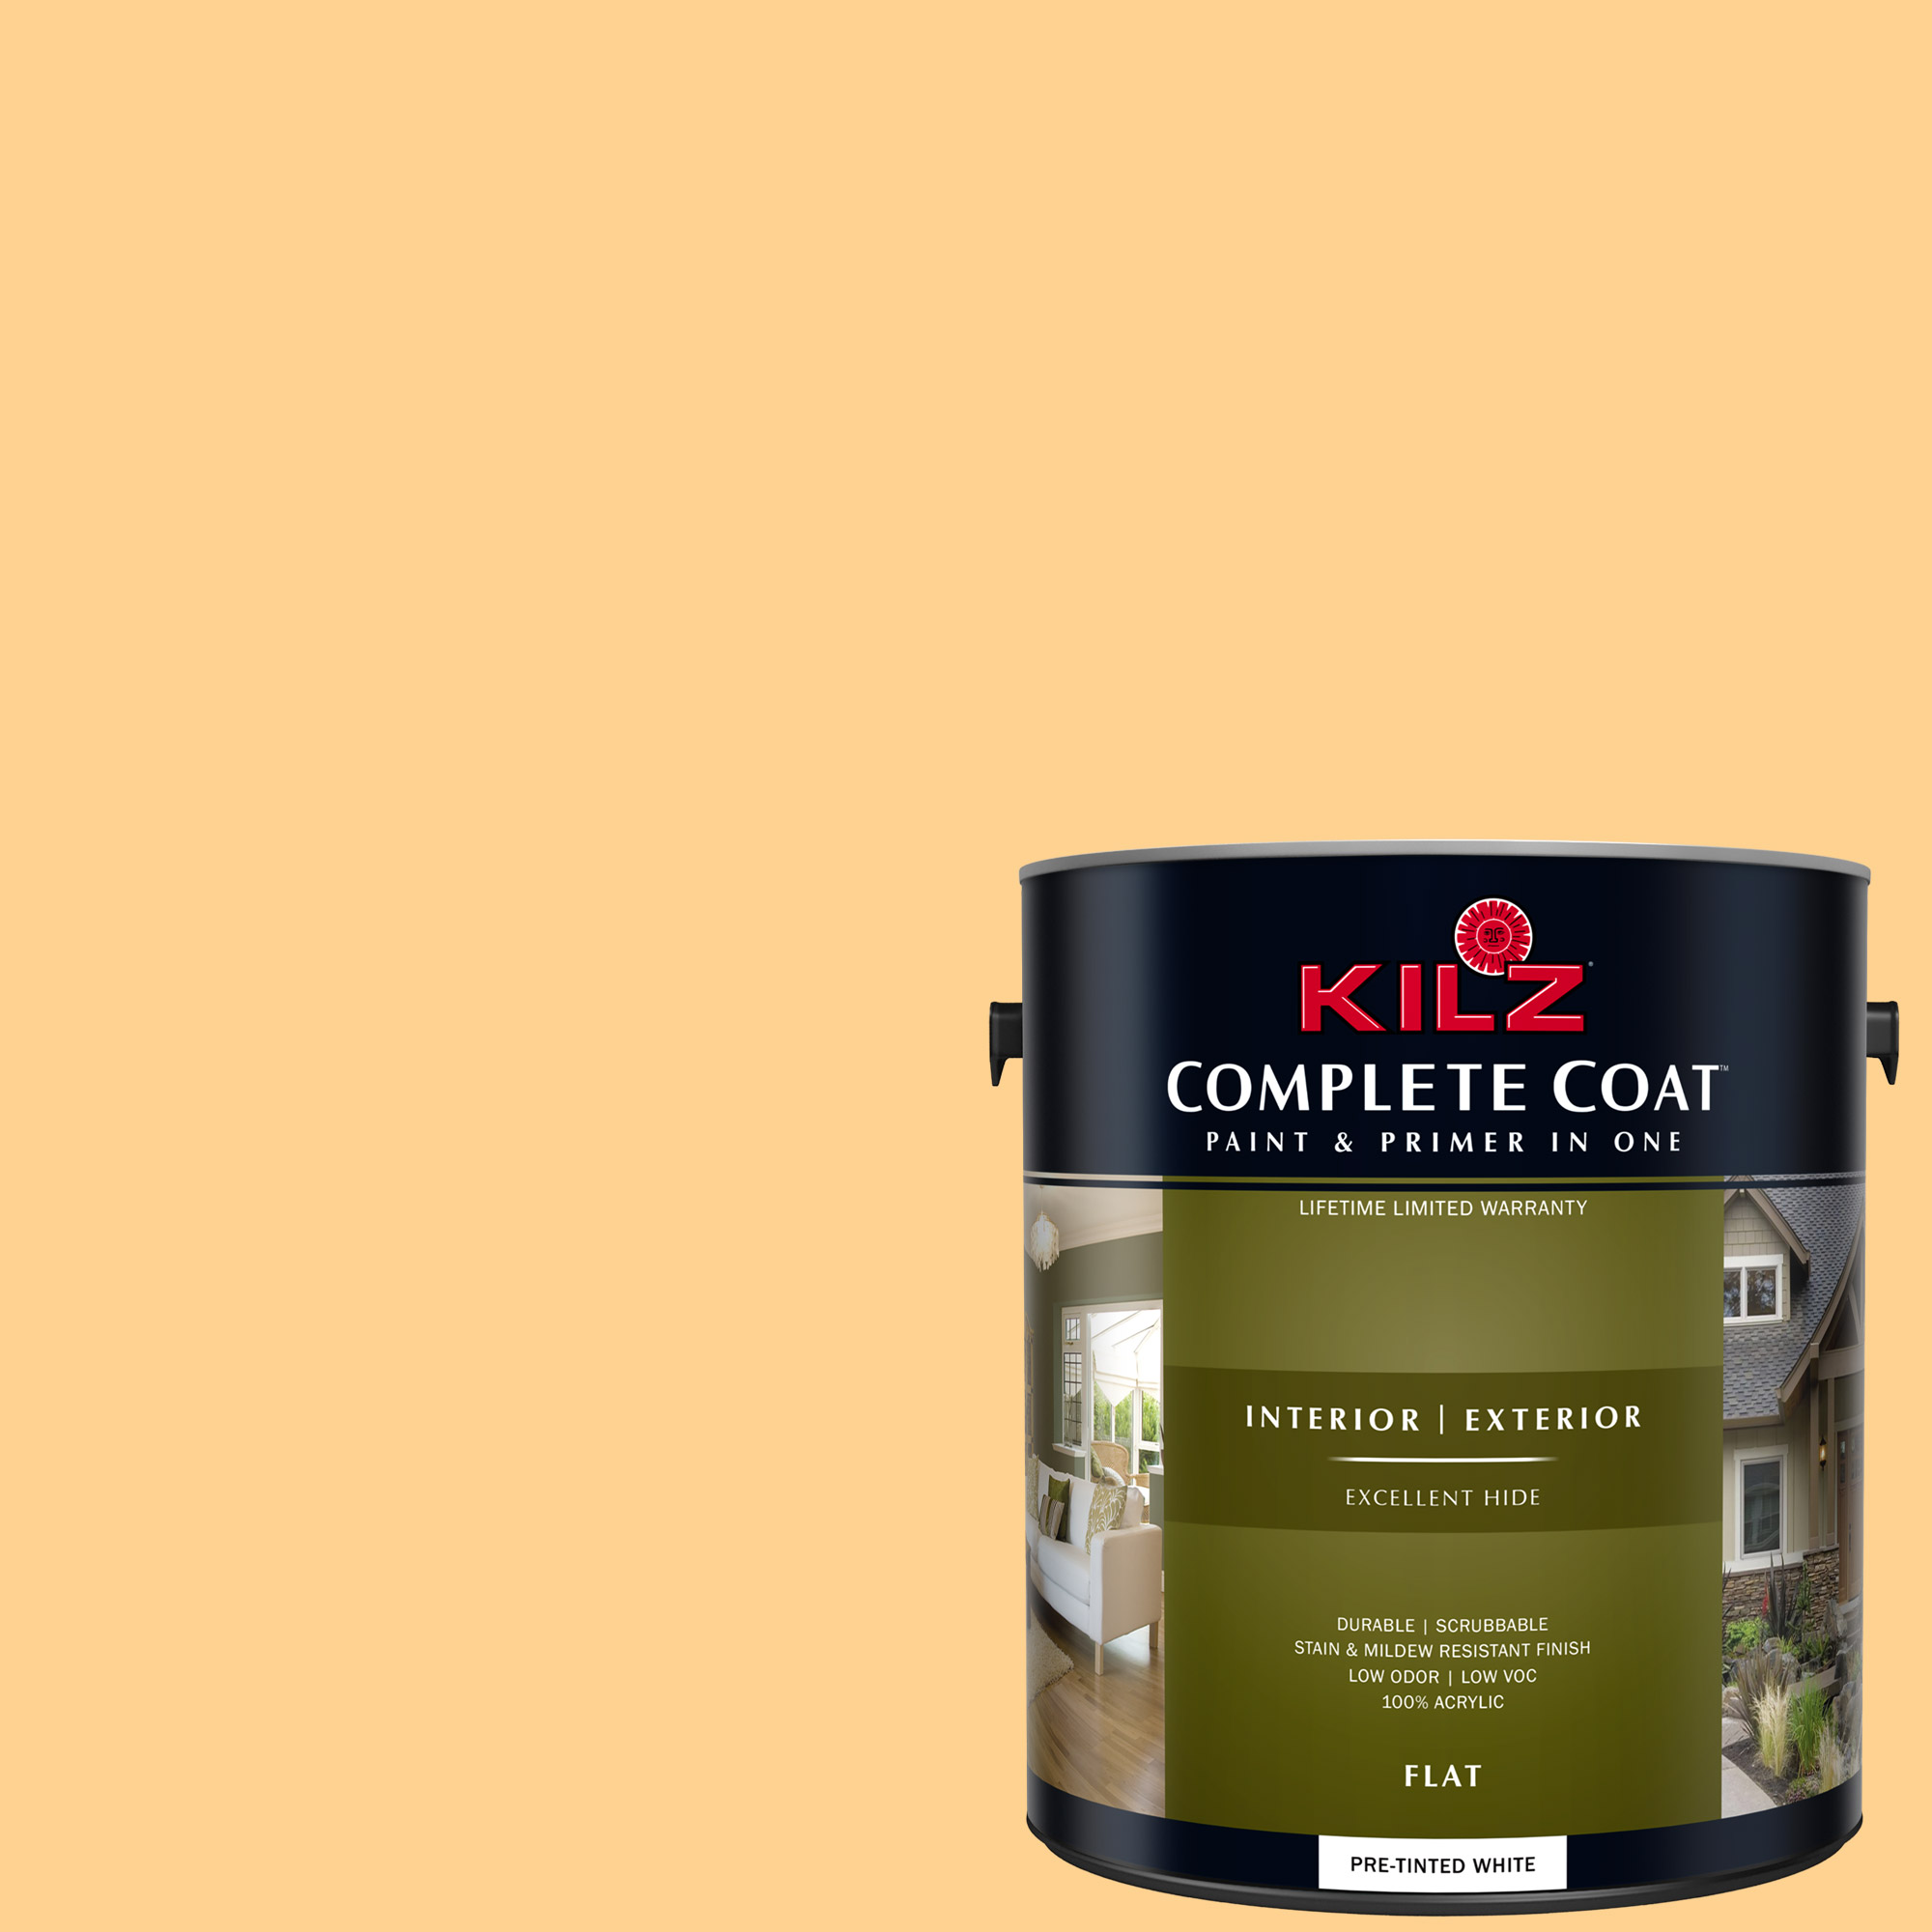 KILZ COMPLETE COAT Interior/Exterior Paint & Primer in One #LD250-01 Glaze Gold